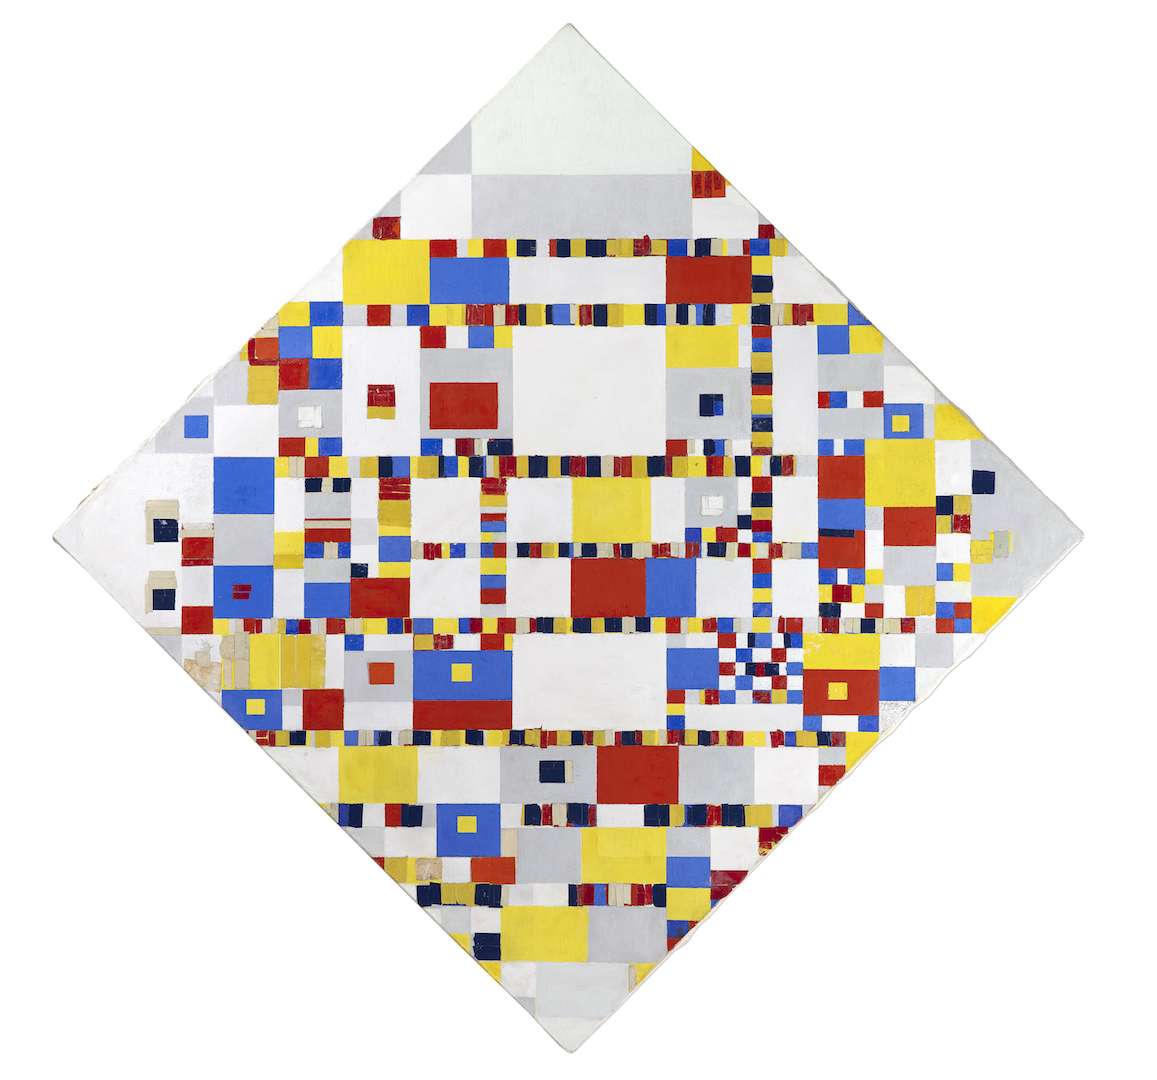 Piet Mondrian Victory Boogie Woogie 1942-1944 Oil, tape, paper, charcoal and pencil on canvas 127.5 x 127.5 cm Gemeentemuseum Den Haag Loan Cultural Heritage Agency of the Netherlands